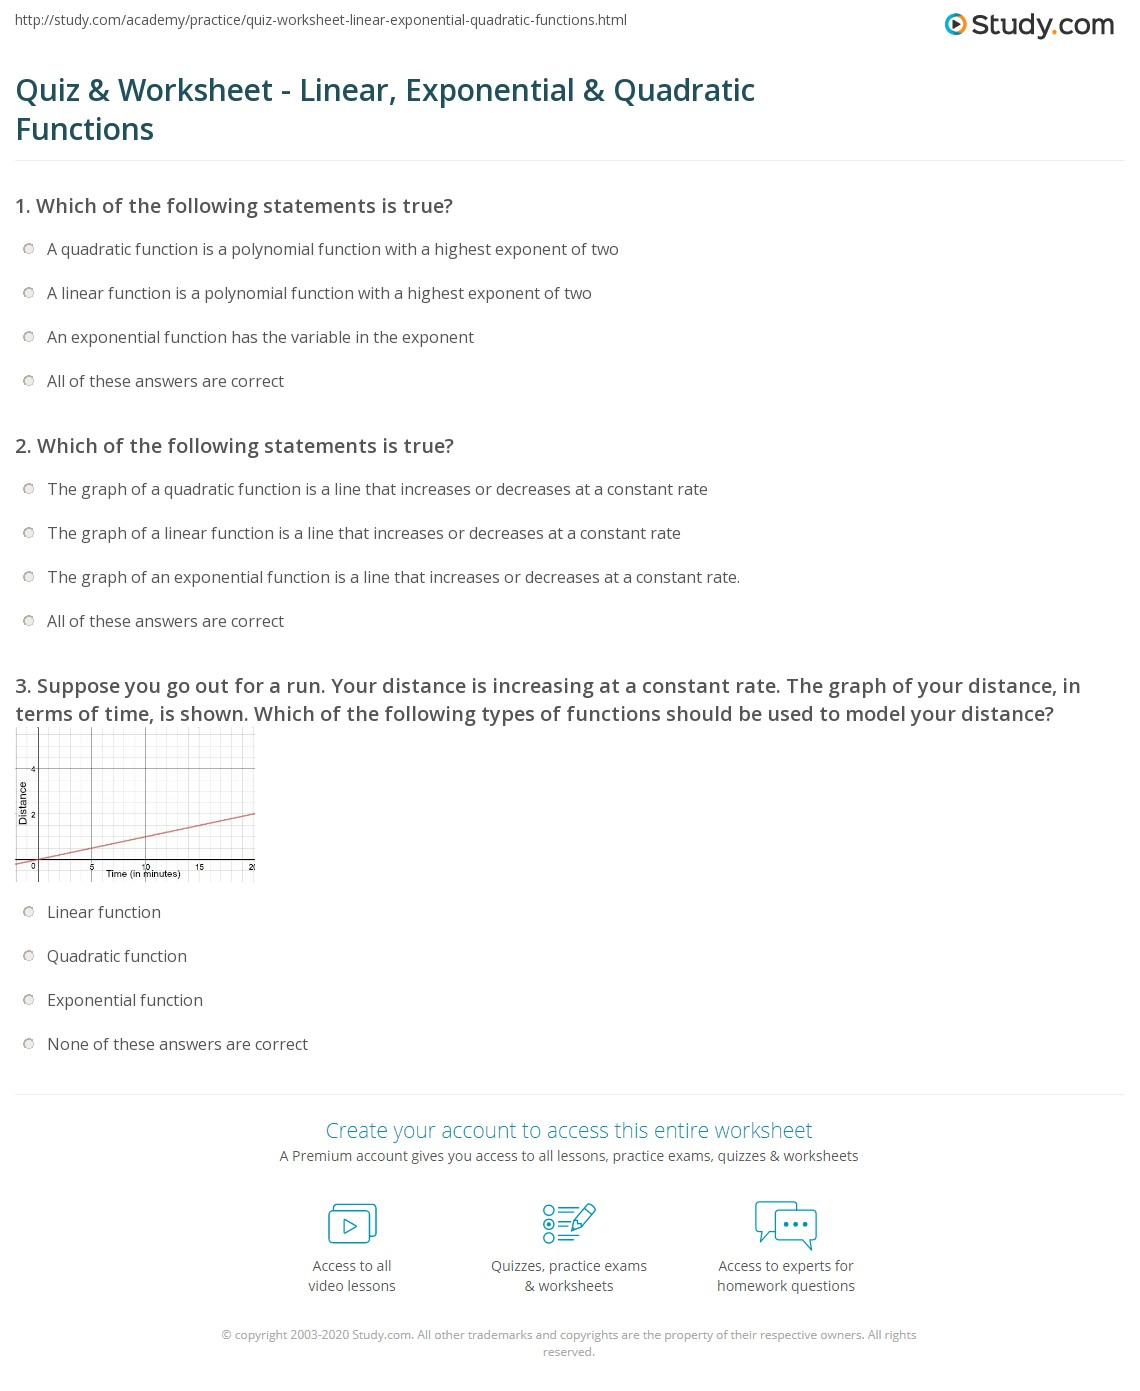 Quiz Worksheet Linear Exponential Quadratic